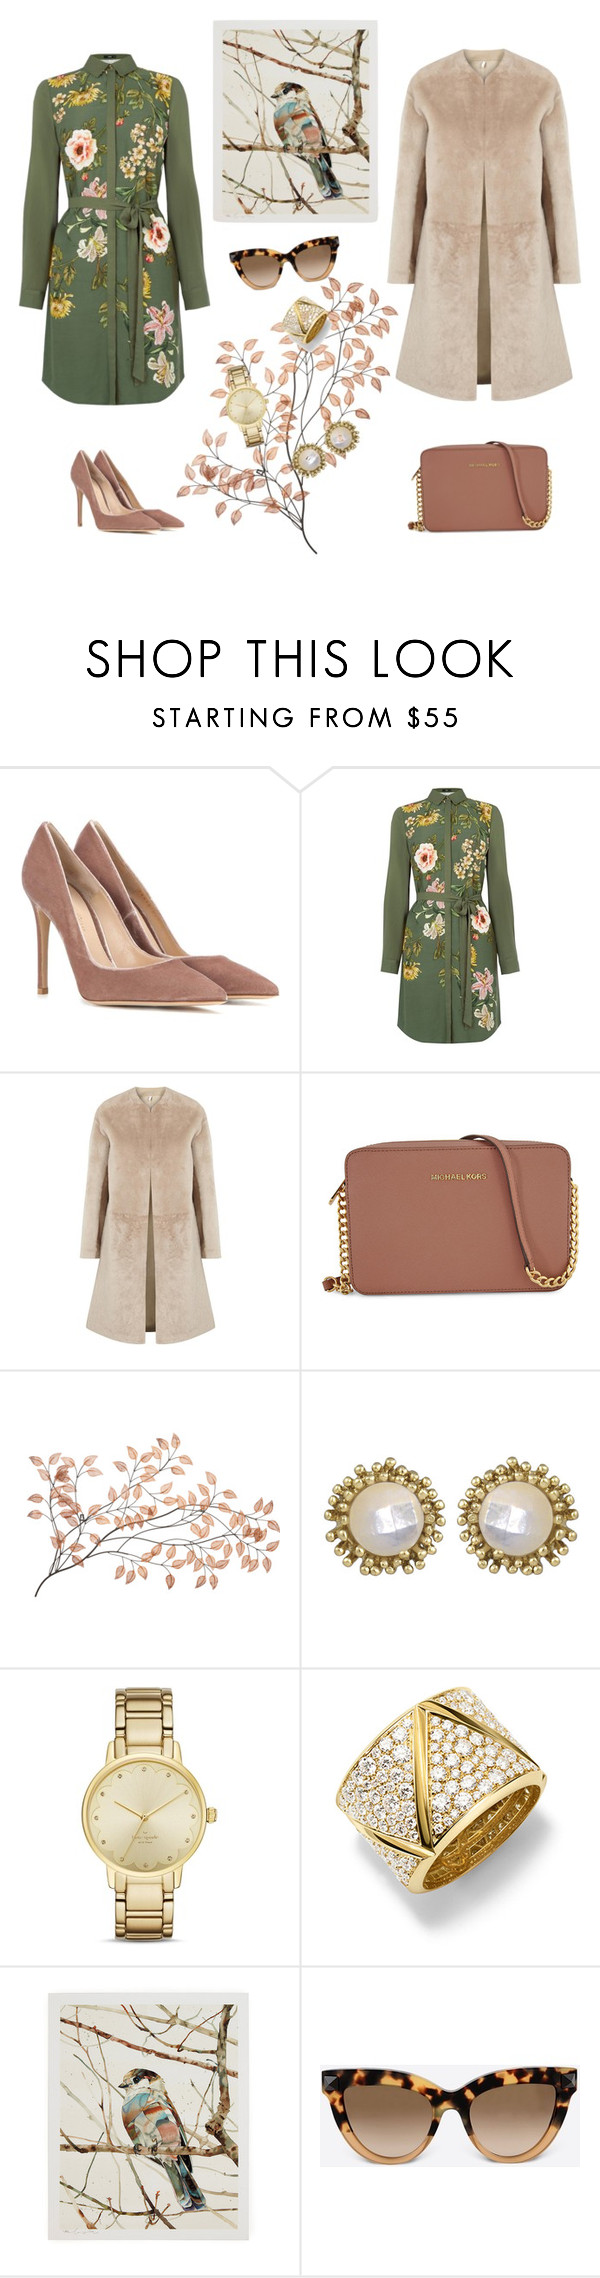 """""""Untitled #133"""" by sanjati ❤ liked on Polyvore featuring Gianvito Rossi, Oasis, Helmut Lang, Michael Kors, Kendra Scott, Kate Spade, Marina B, Valentino, women's clothing and women"""